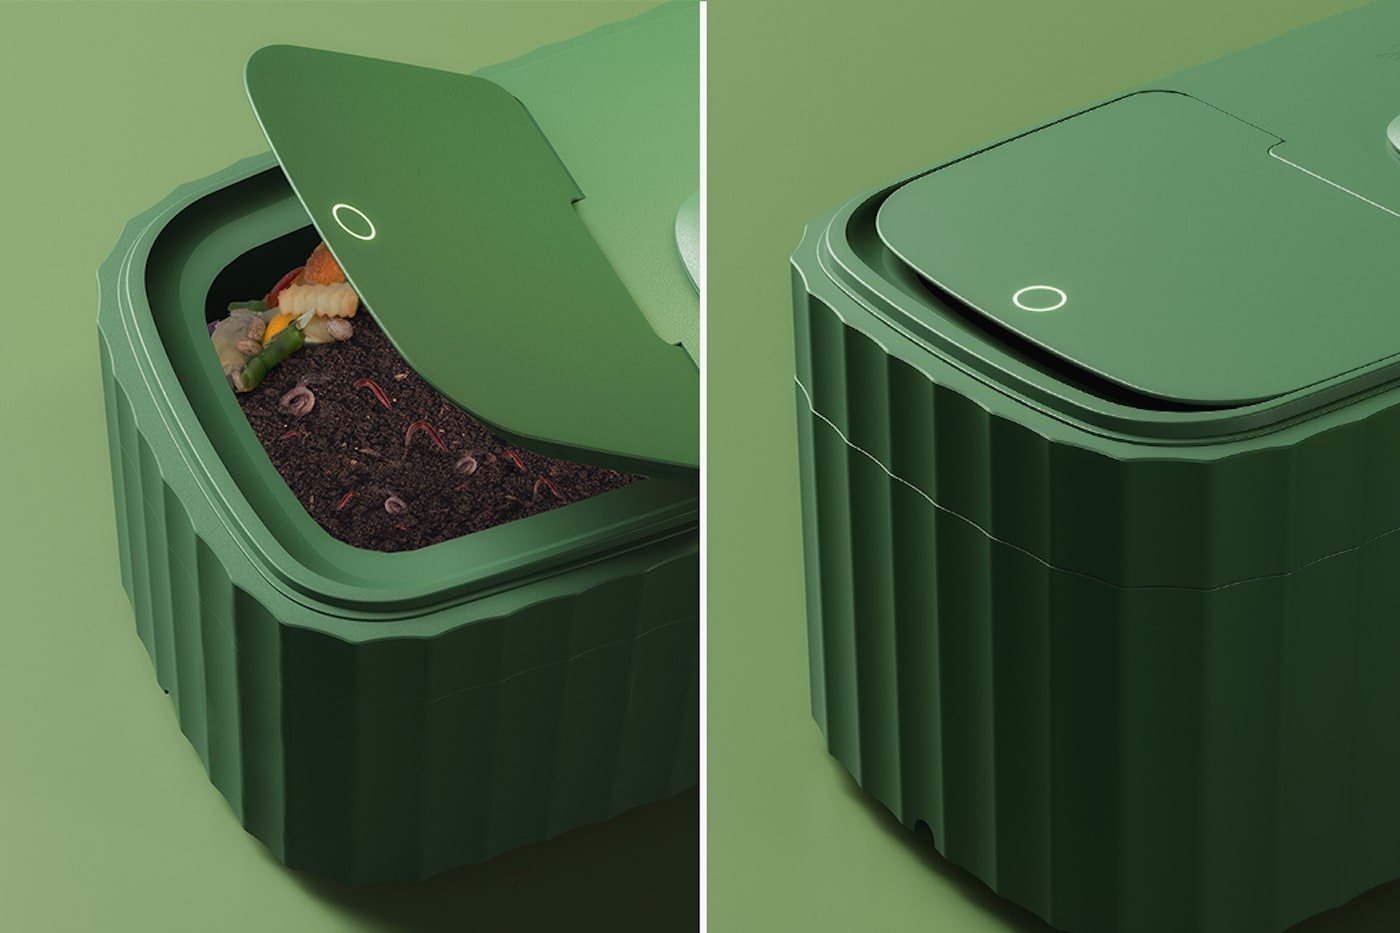 Green compost unit on bench top